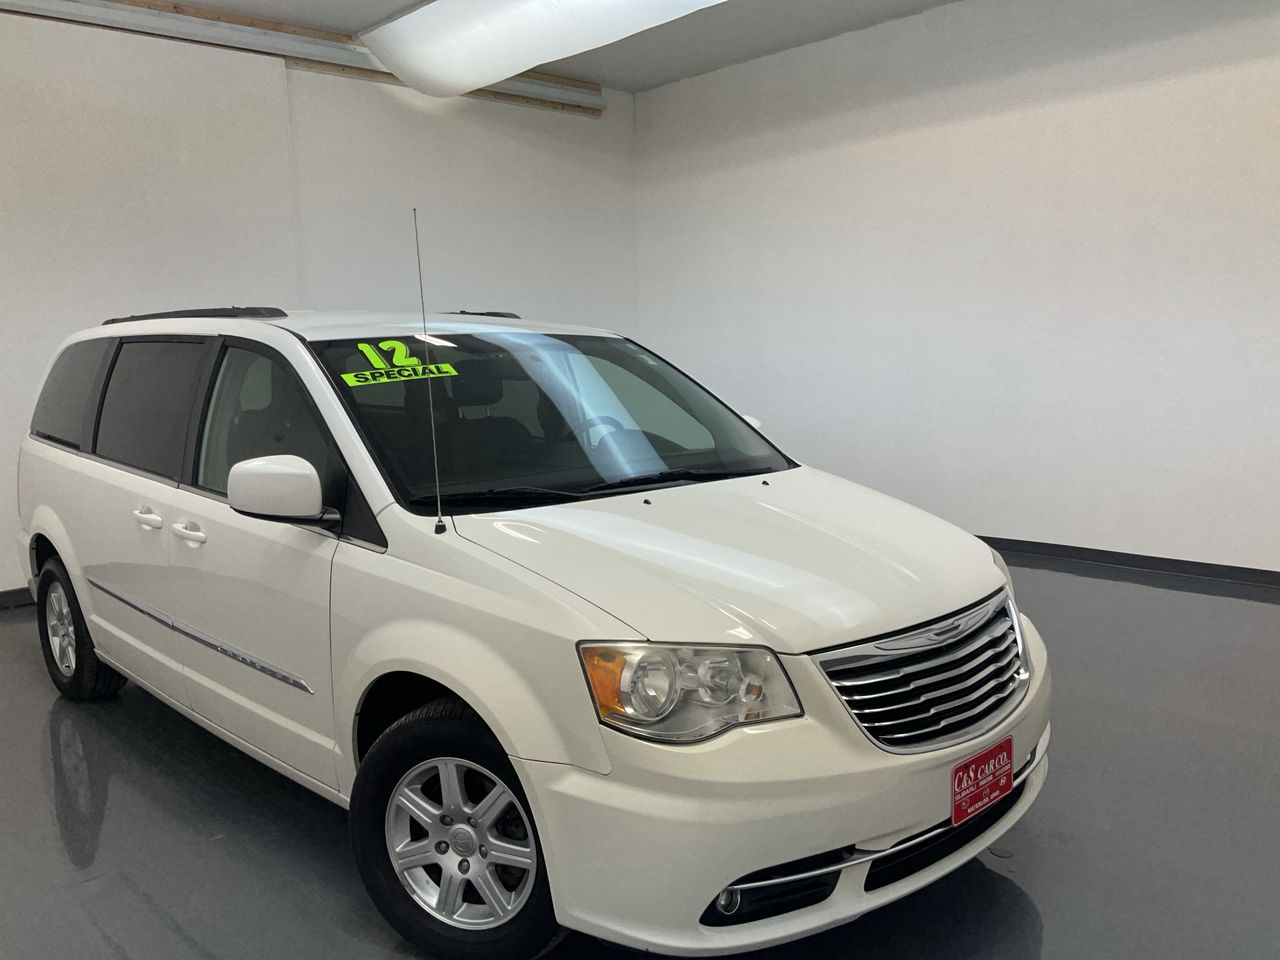 2012 Chrysler Town & Country Wagon LWB  - SC8170A  - C & S Car Company